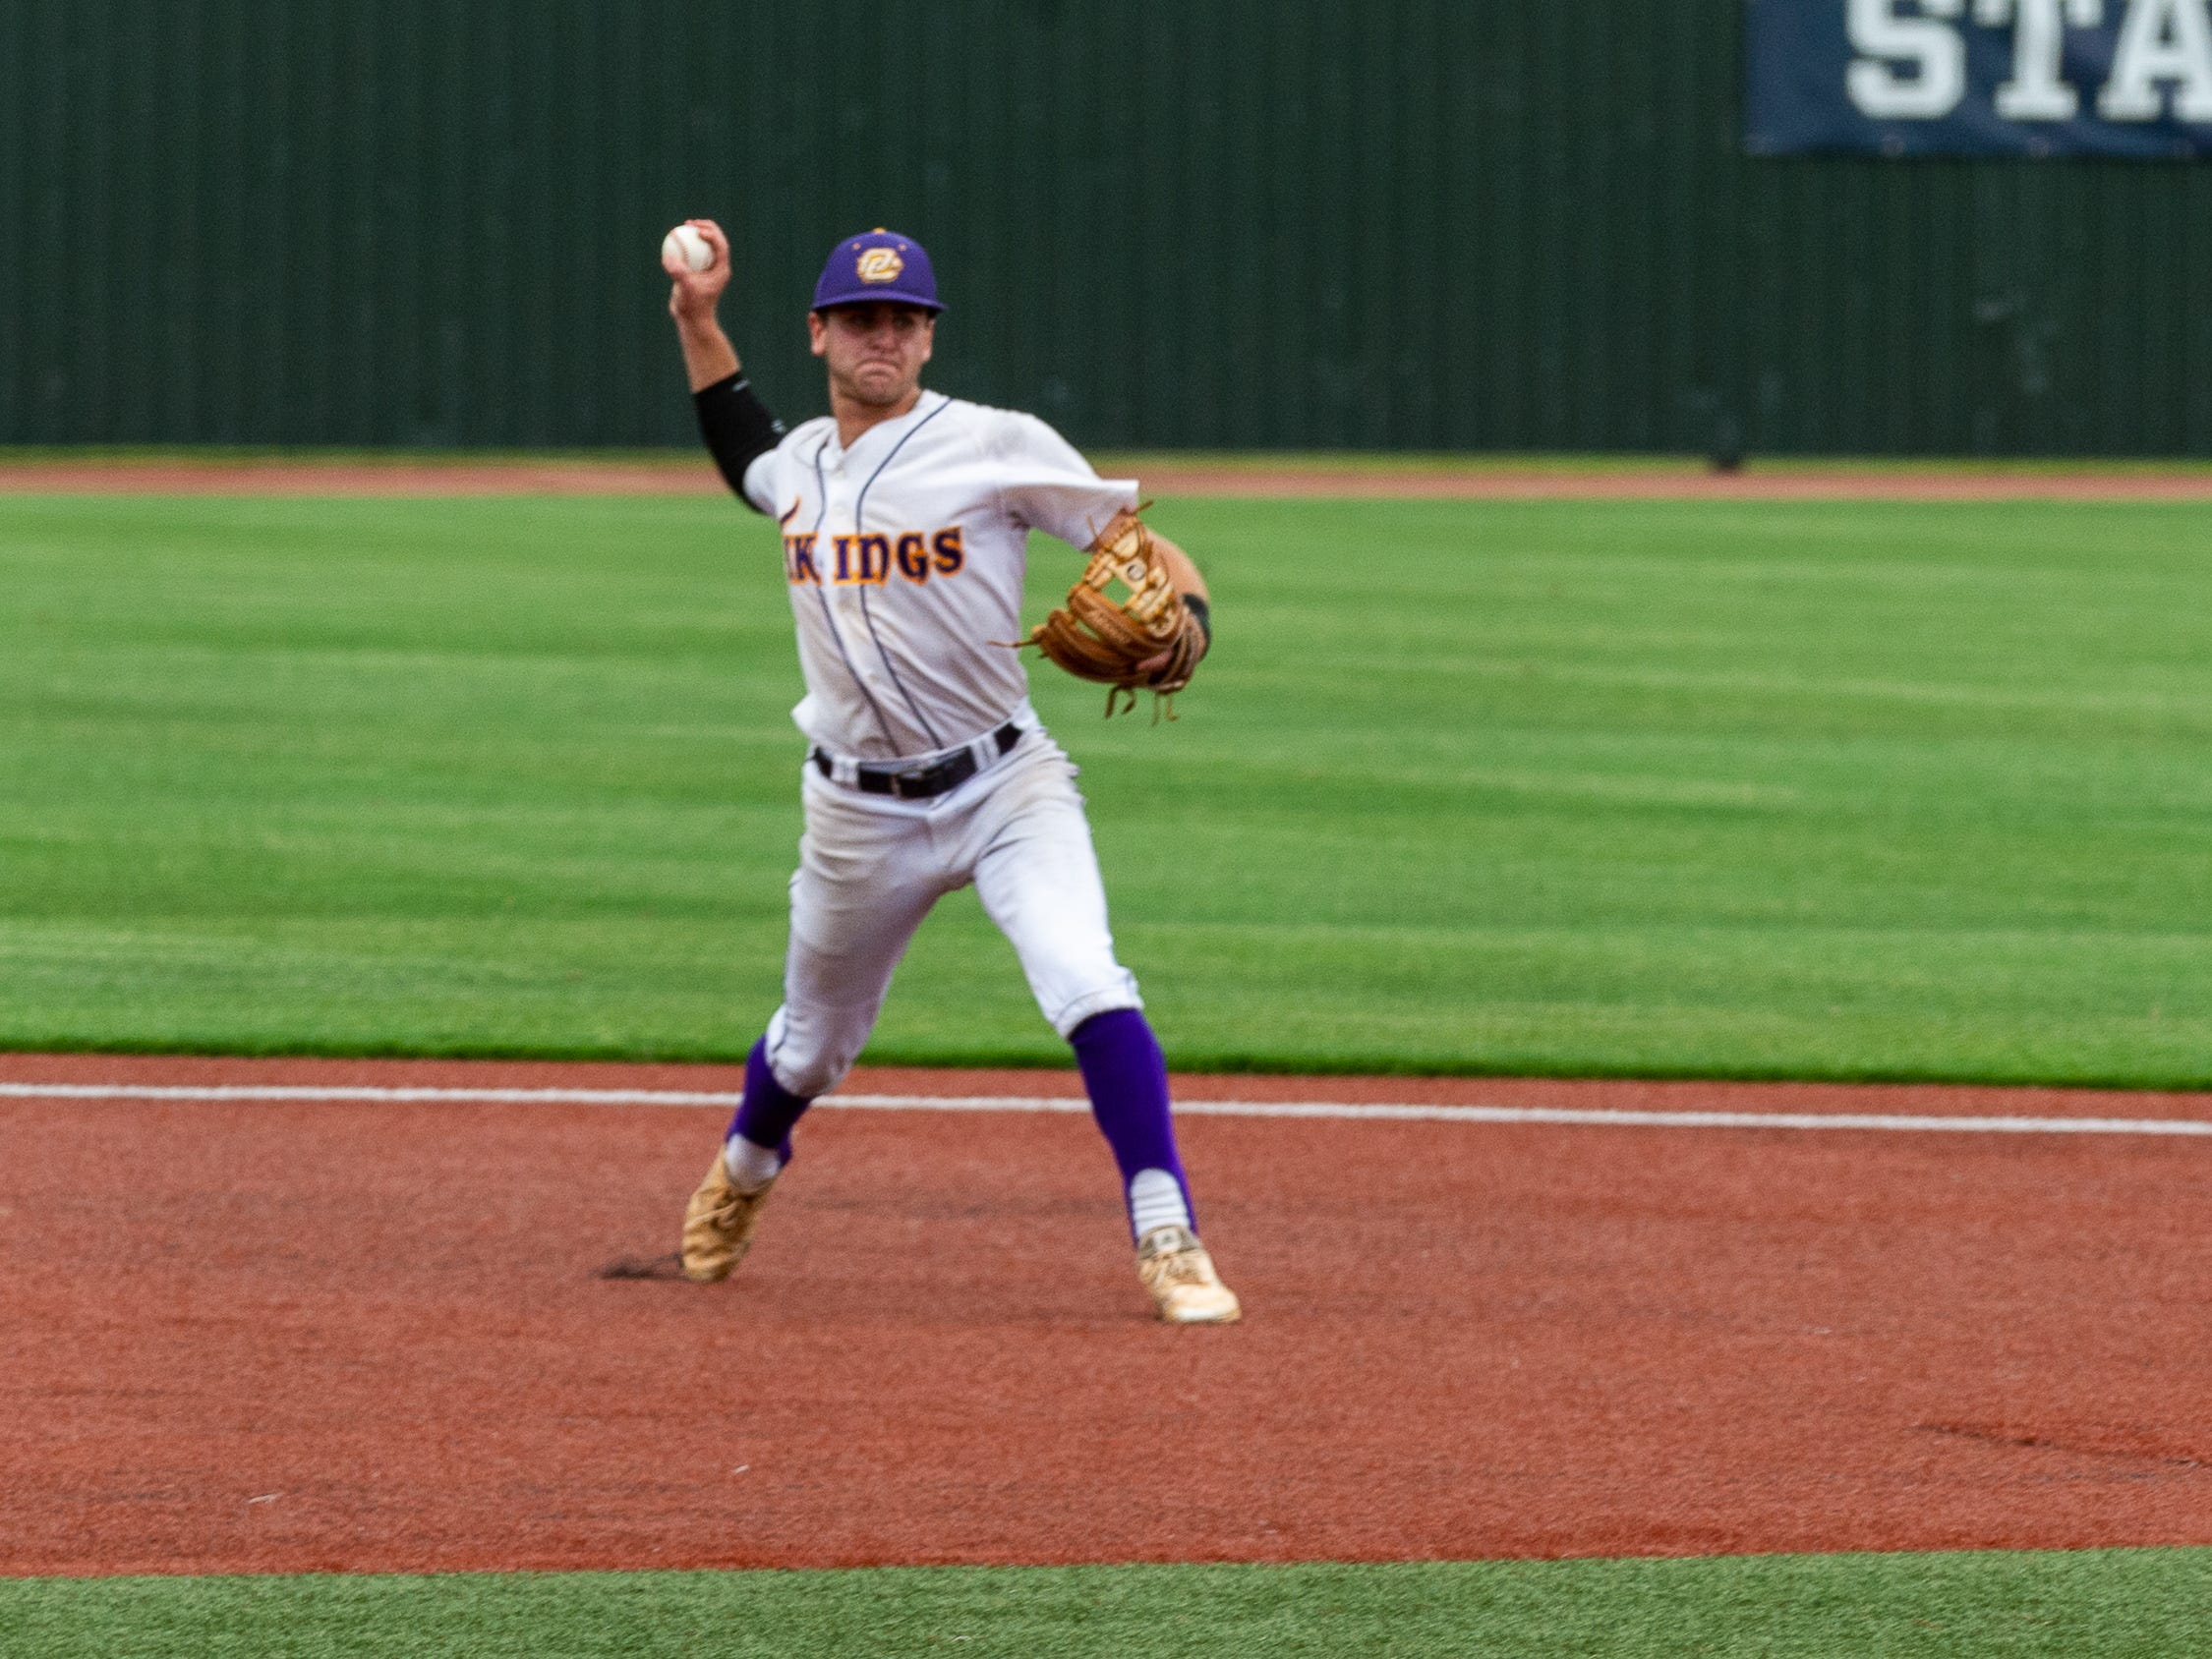 Shortstop Zach Mengarelli throws down to first as Opelousas Catholic takes on Ascension Catholic in the Div IV Semi Final game of the LHSAA State Baseball Championship. Wednesday, May 8, 2019.